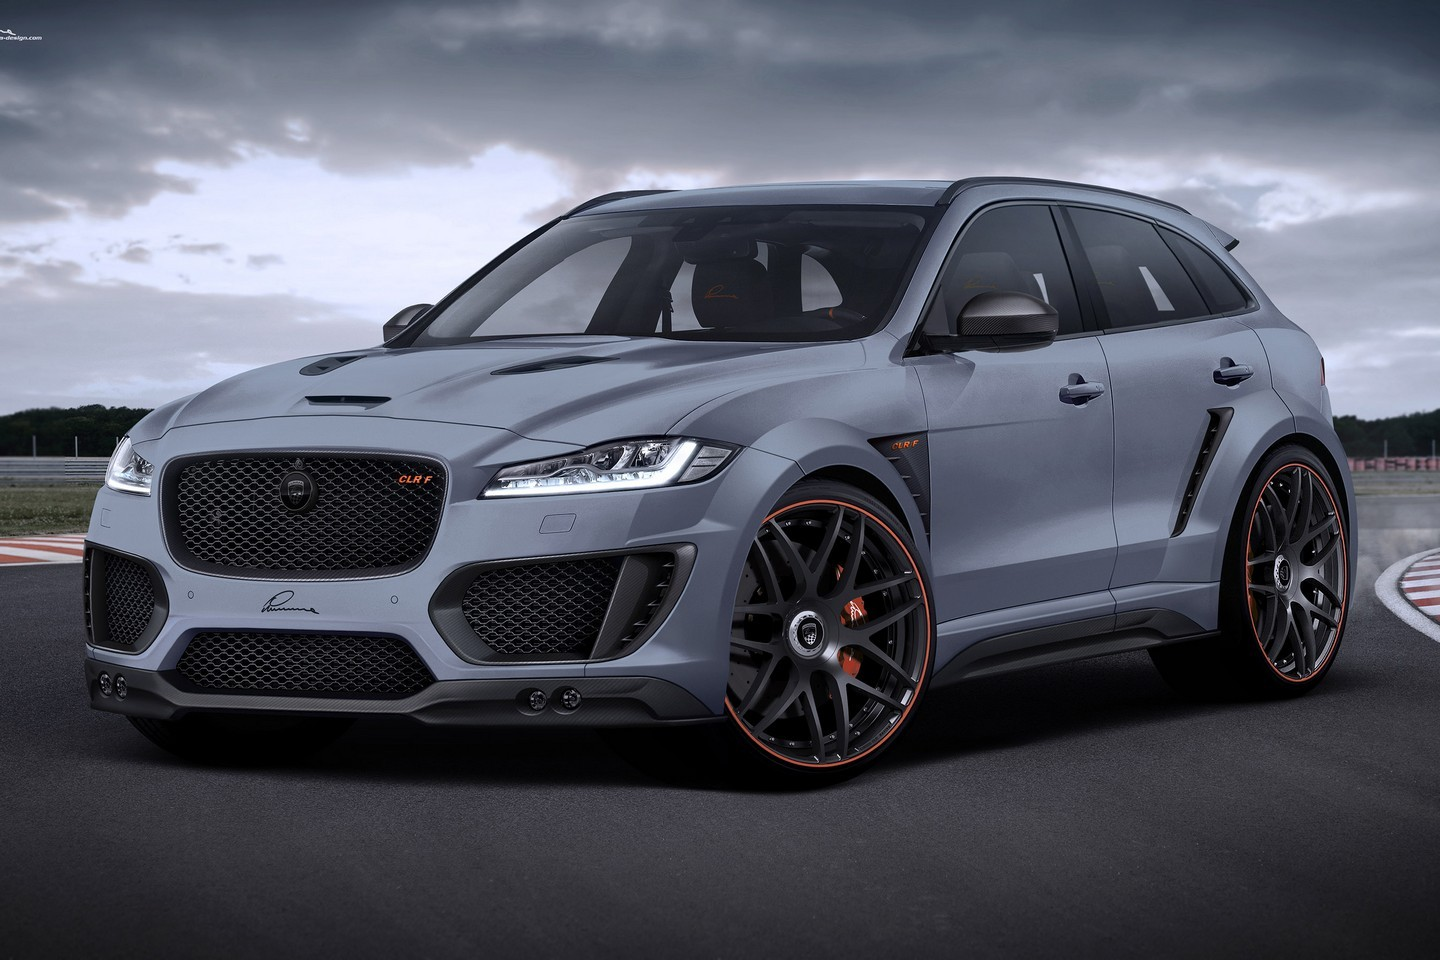 jaguar f pace looks stronger with wide body kits from lumma damnedwerk. Black Bedroom Furniture Sets. Home Design Ideas